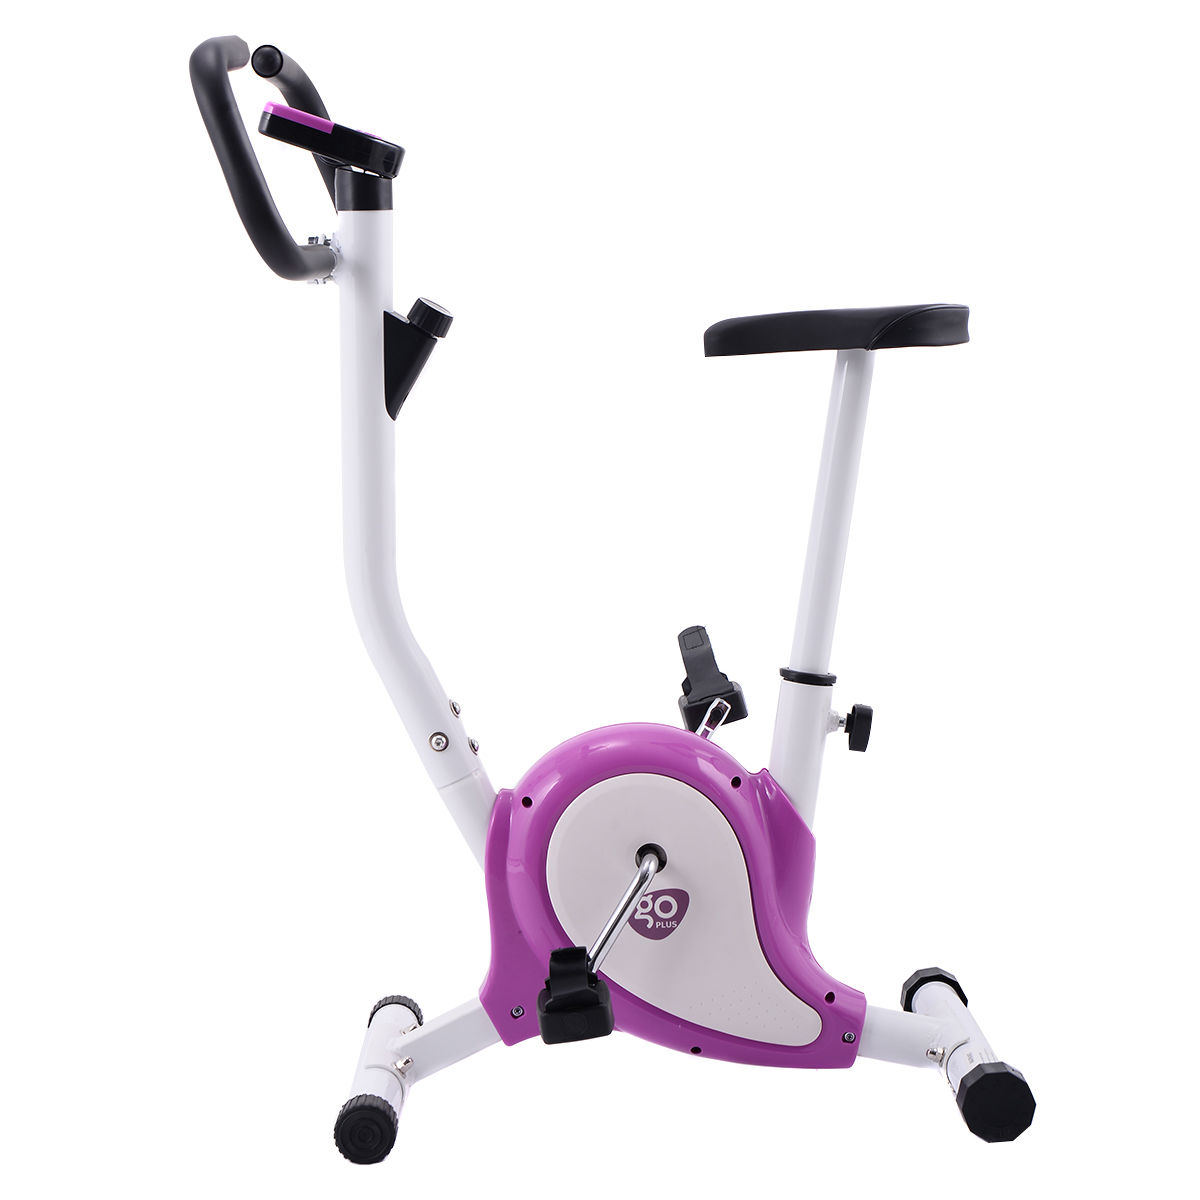 GHP White & Purple Stationary Upright Gym Workout Exercise Bike with LCD Display